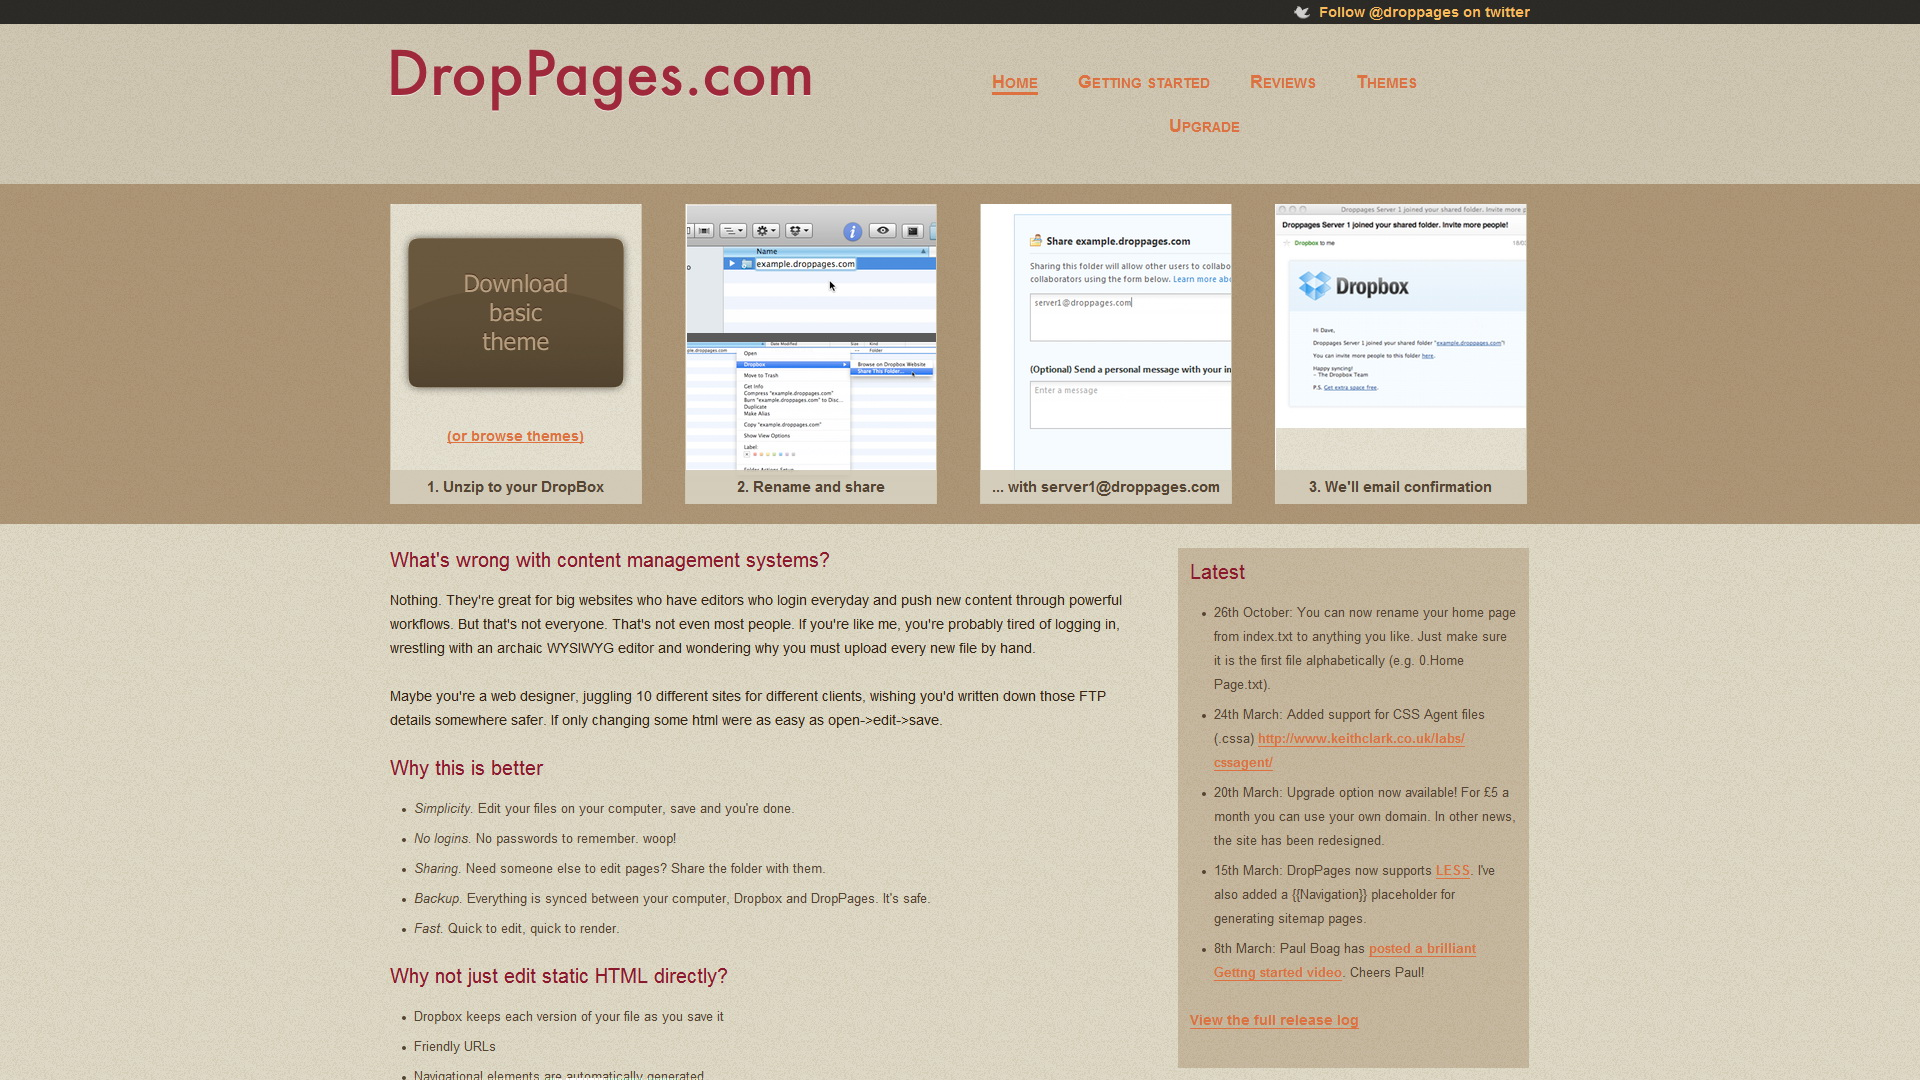 dpages